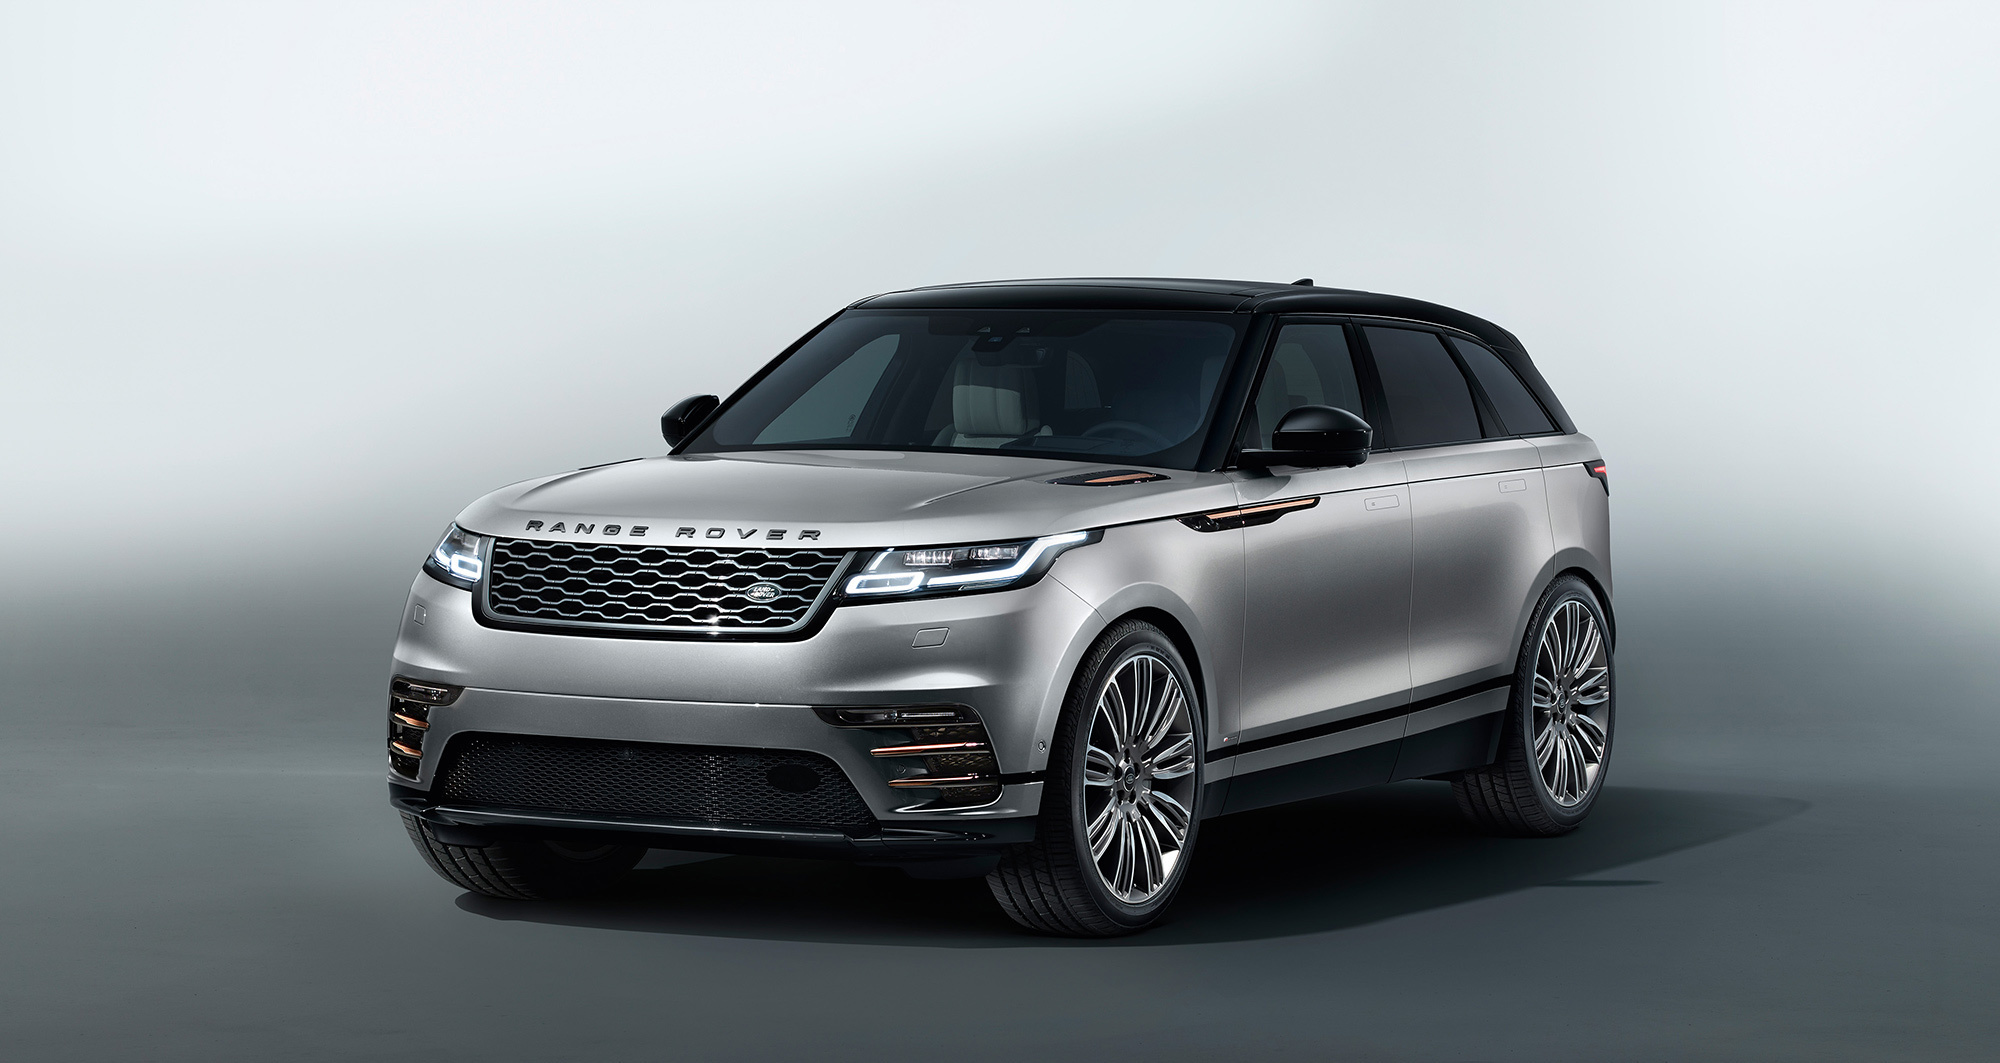 Range Rover Velar >> Range Rover Velar Wallpapers Images Photos Pictures Backgrounds